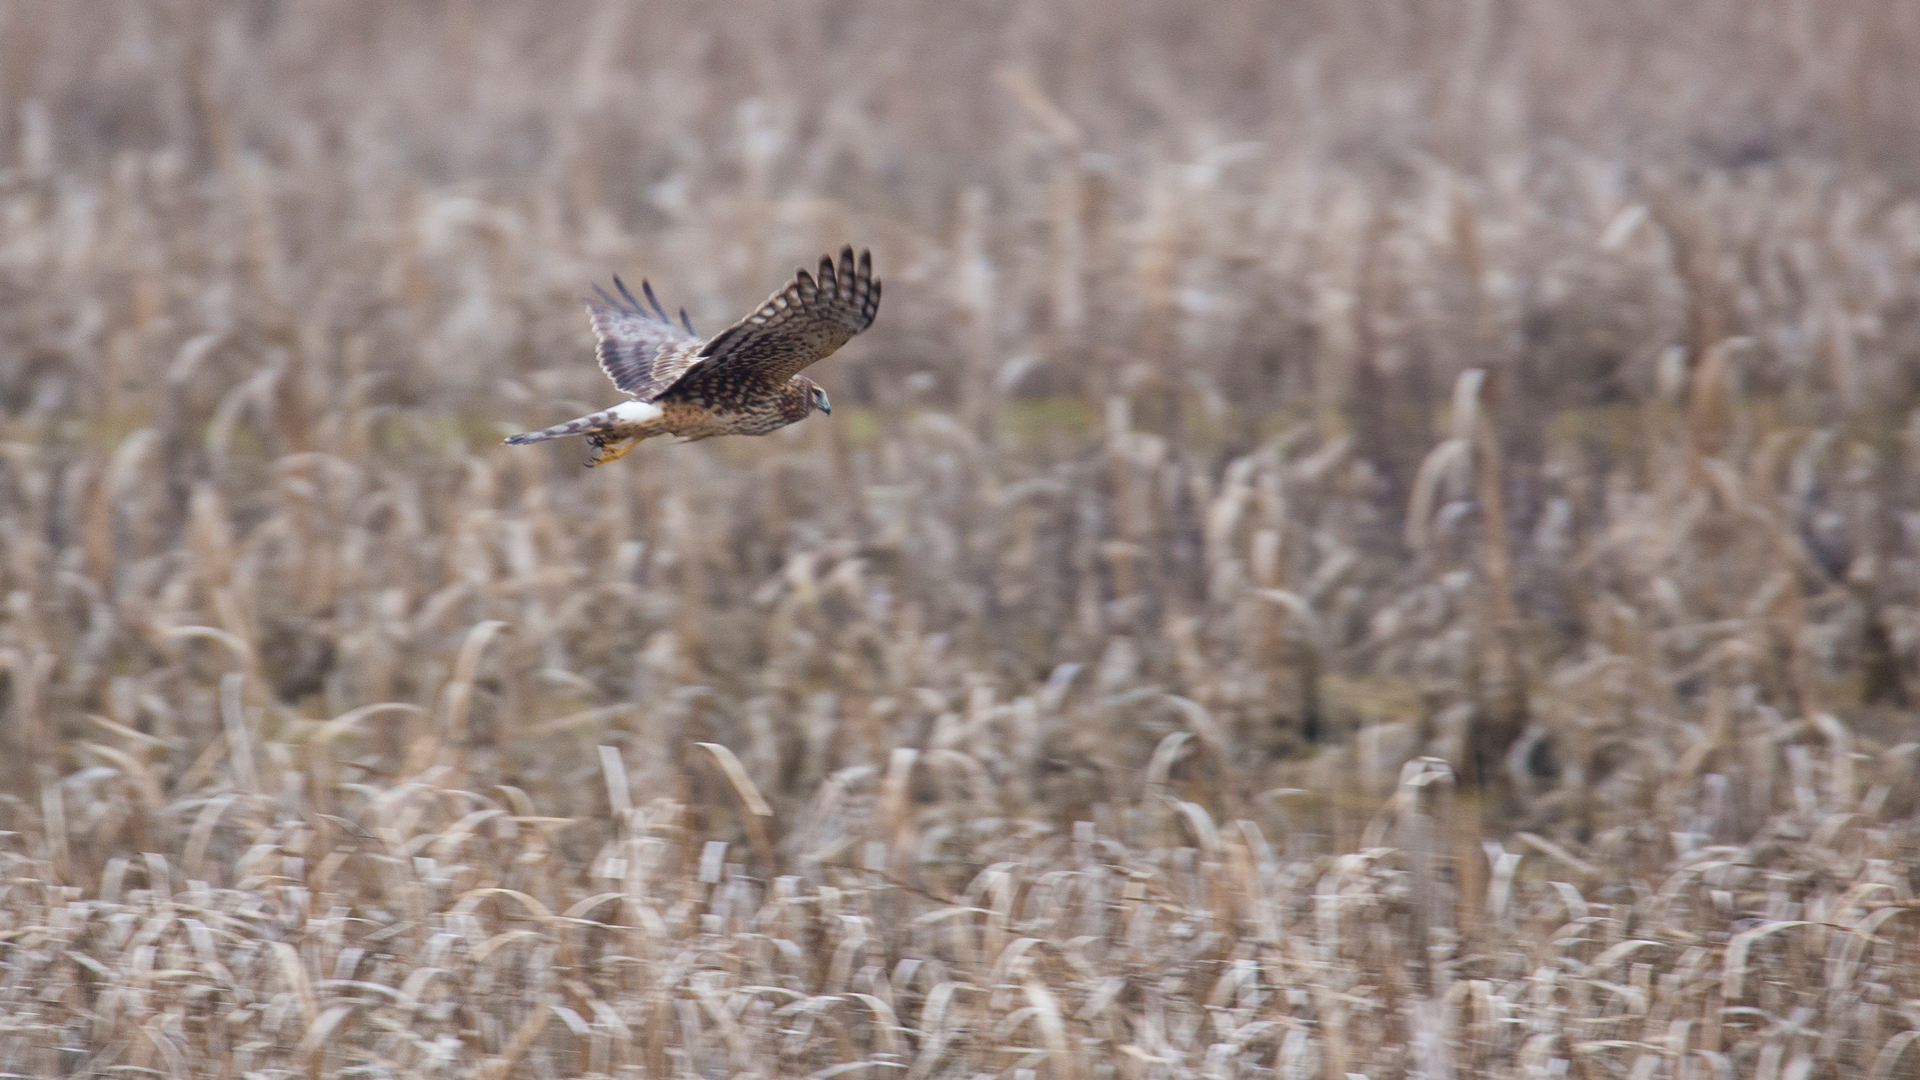 A separate female northern harrier, this one did seem to be in hunting mode.